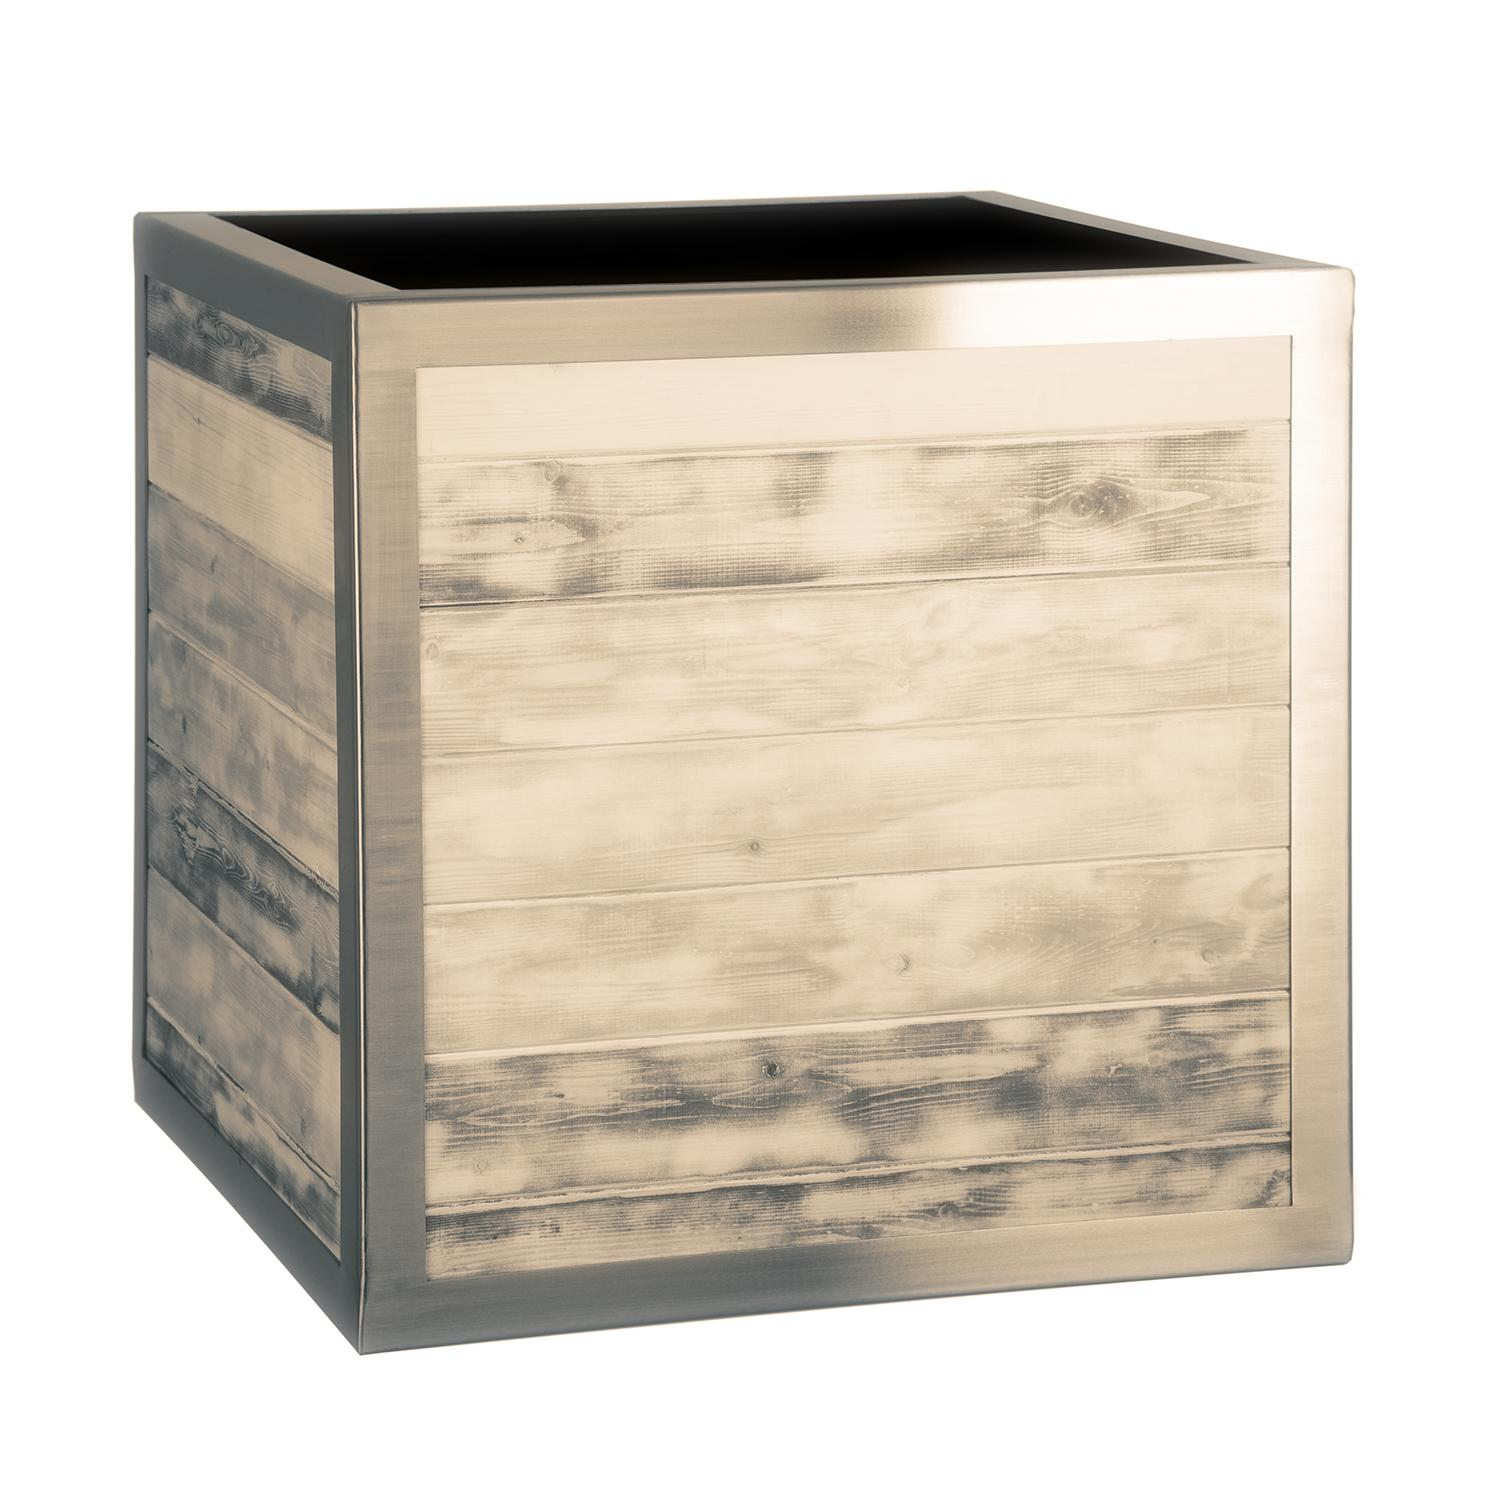 wooden_planter_garden_cube_outdoor_distressed_timber_stainless_steel_frame